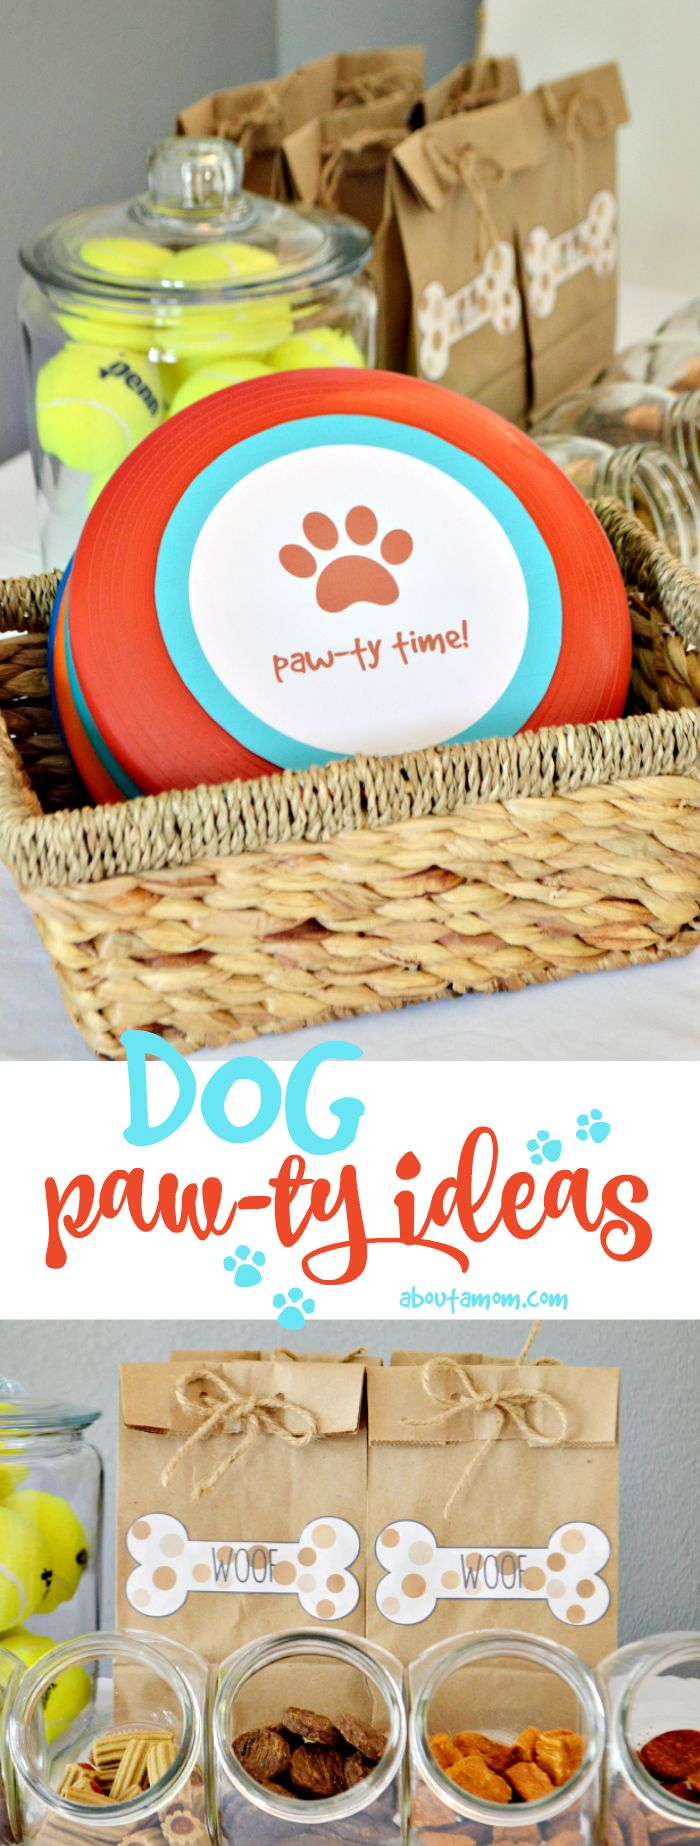 Dog party ideas and printables that will guarantee a barking good time for your 4-legged friends. Delicious dog treats, frisbee printable, doggy bag printable and more. #NutrishPets AD